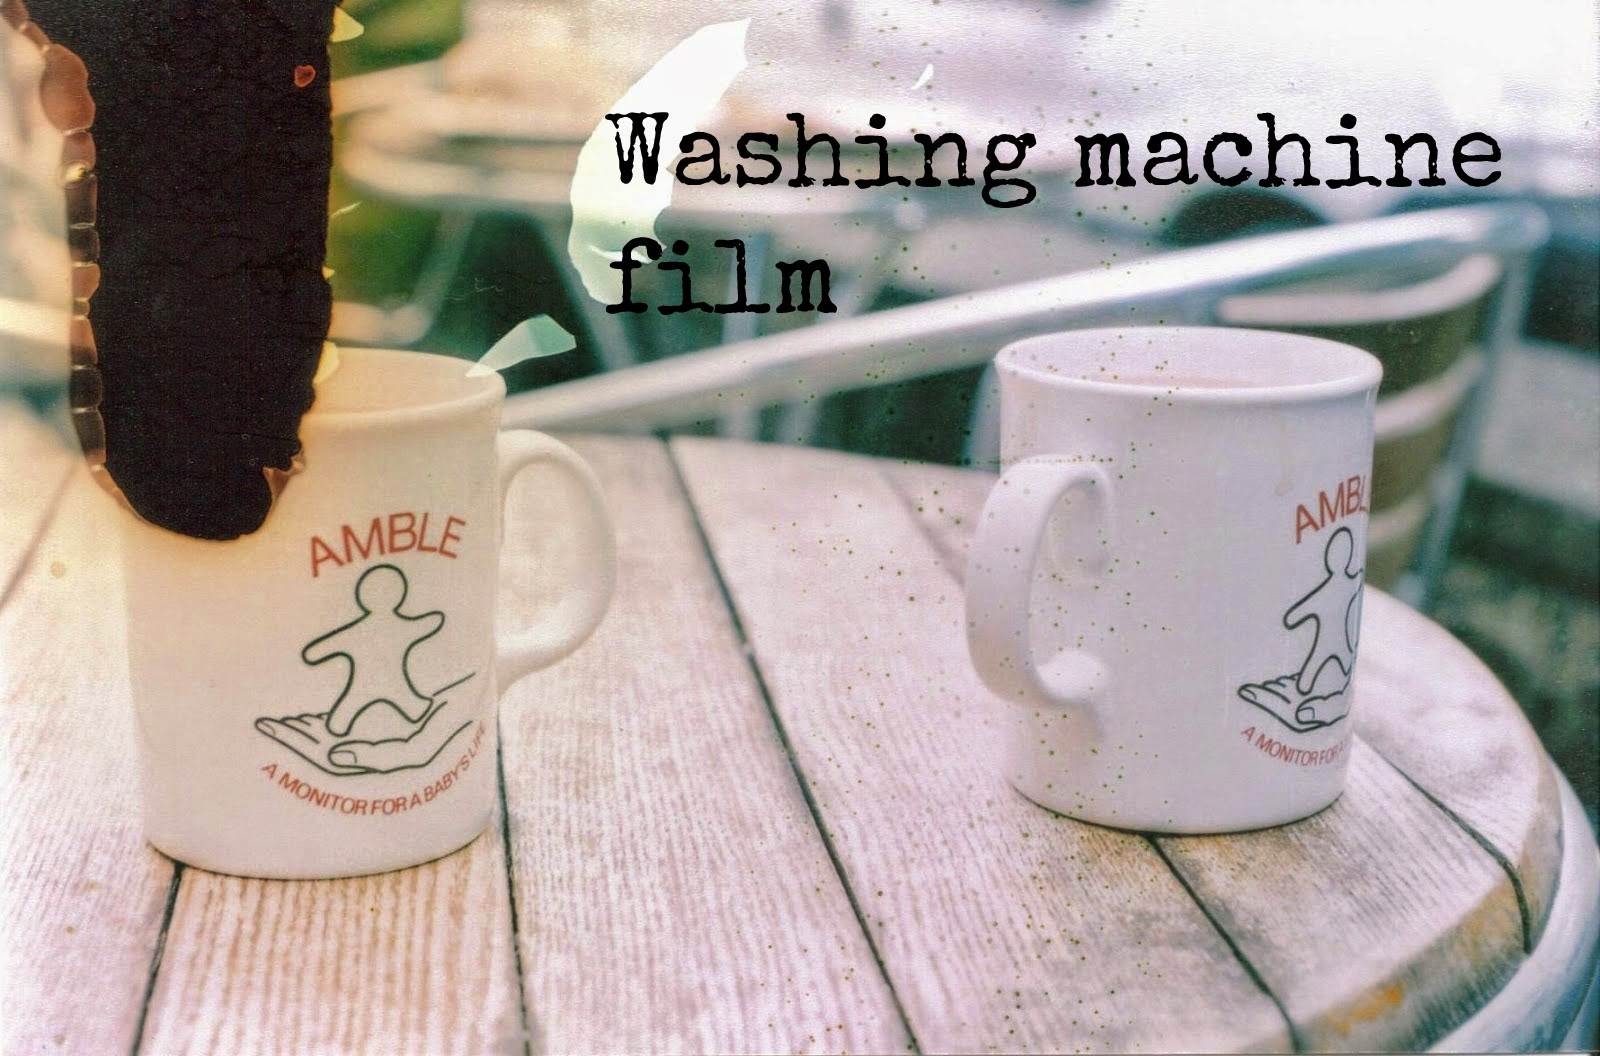 http://talesonfilm.blogspot.co.uk/2014/06/washing-machine-film.html